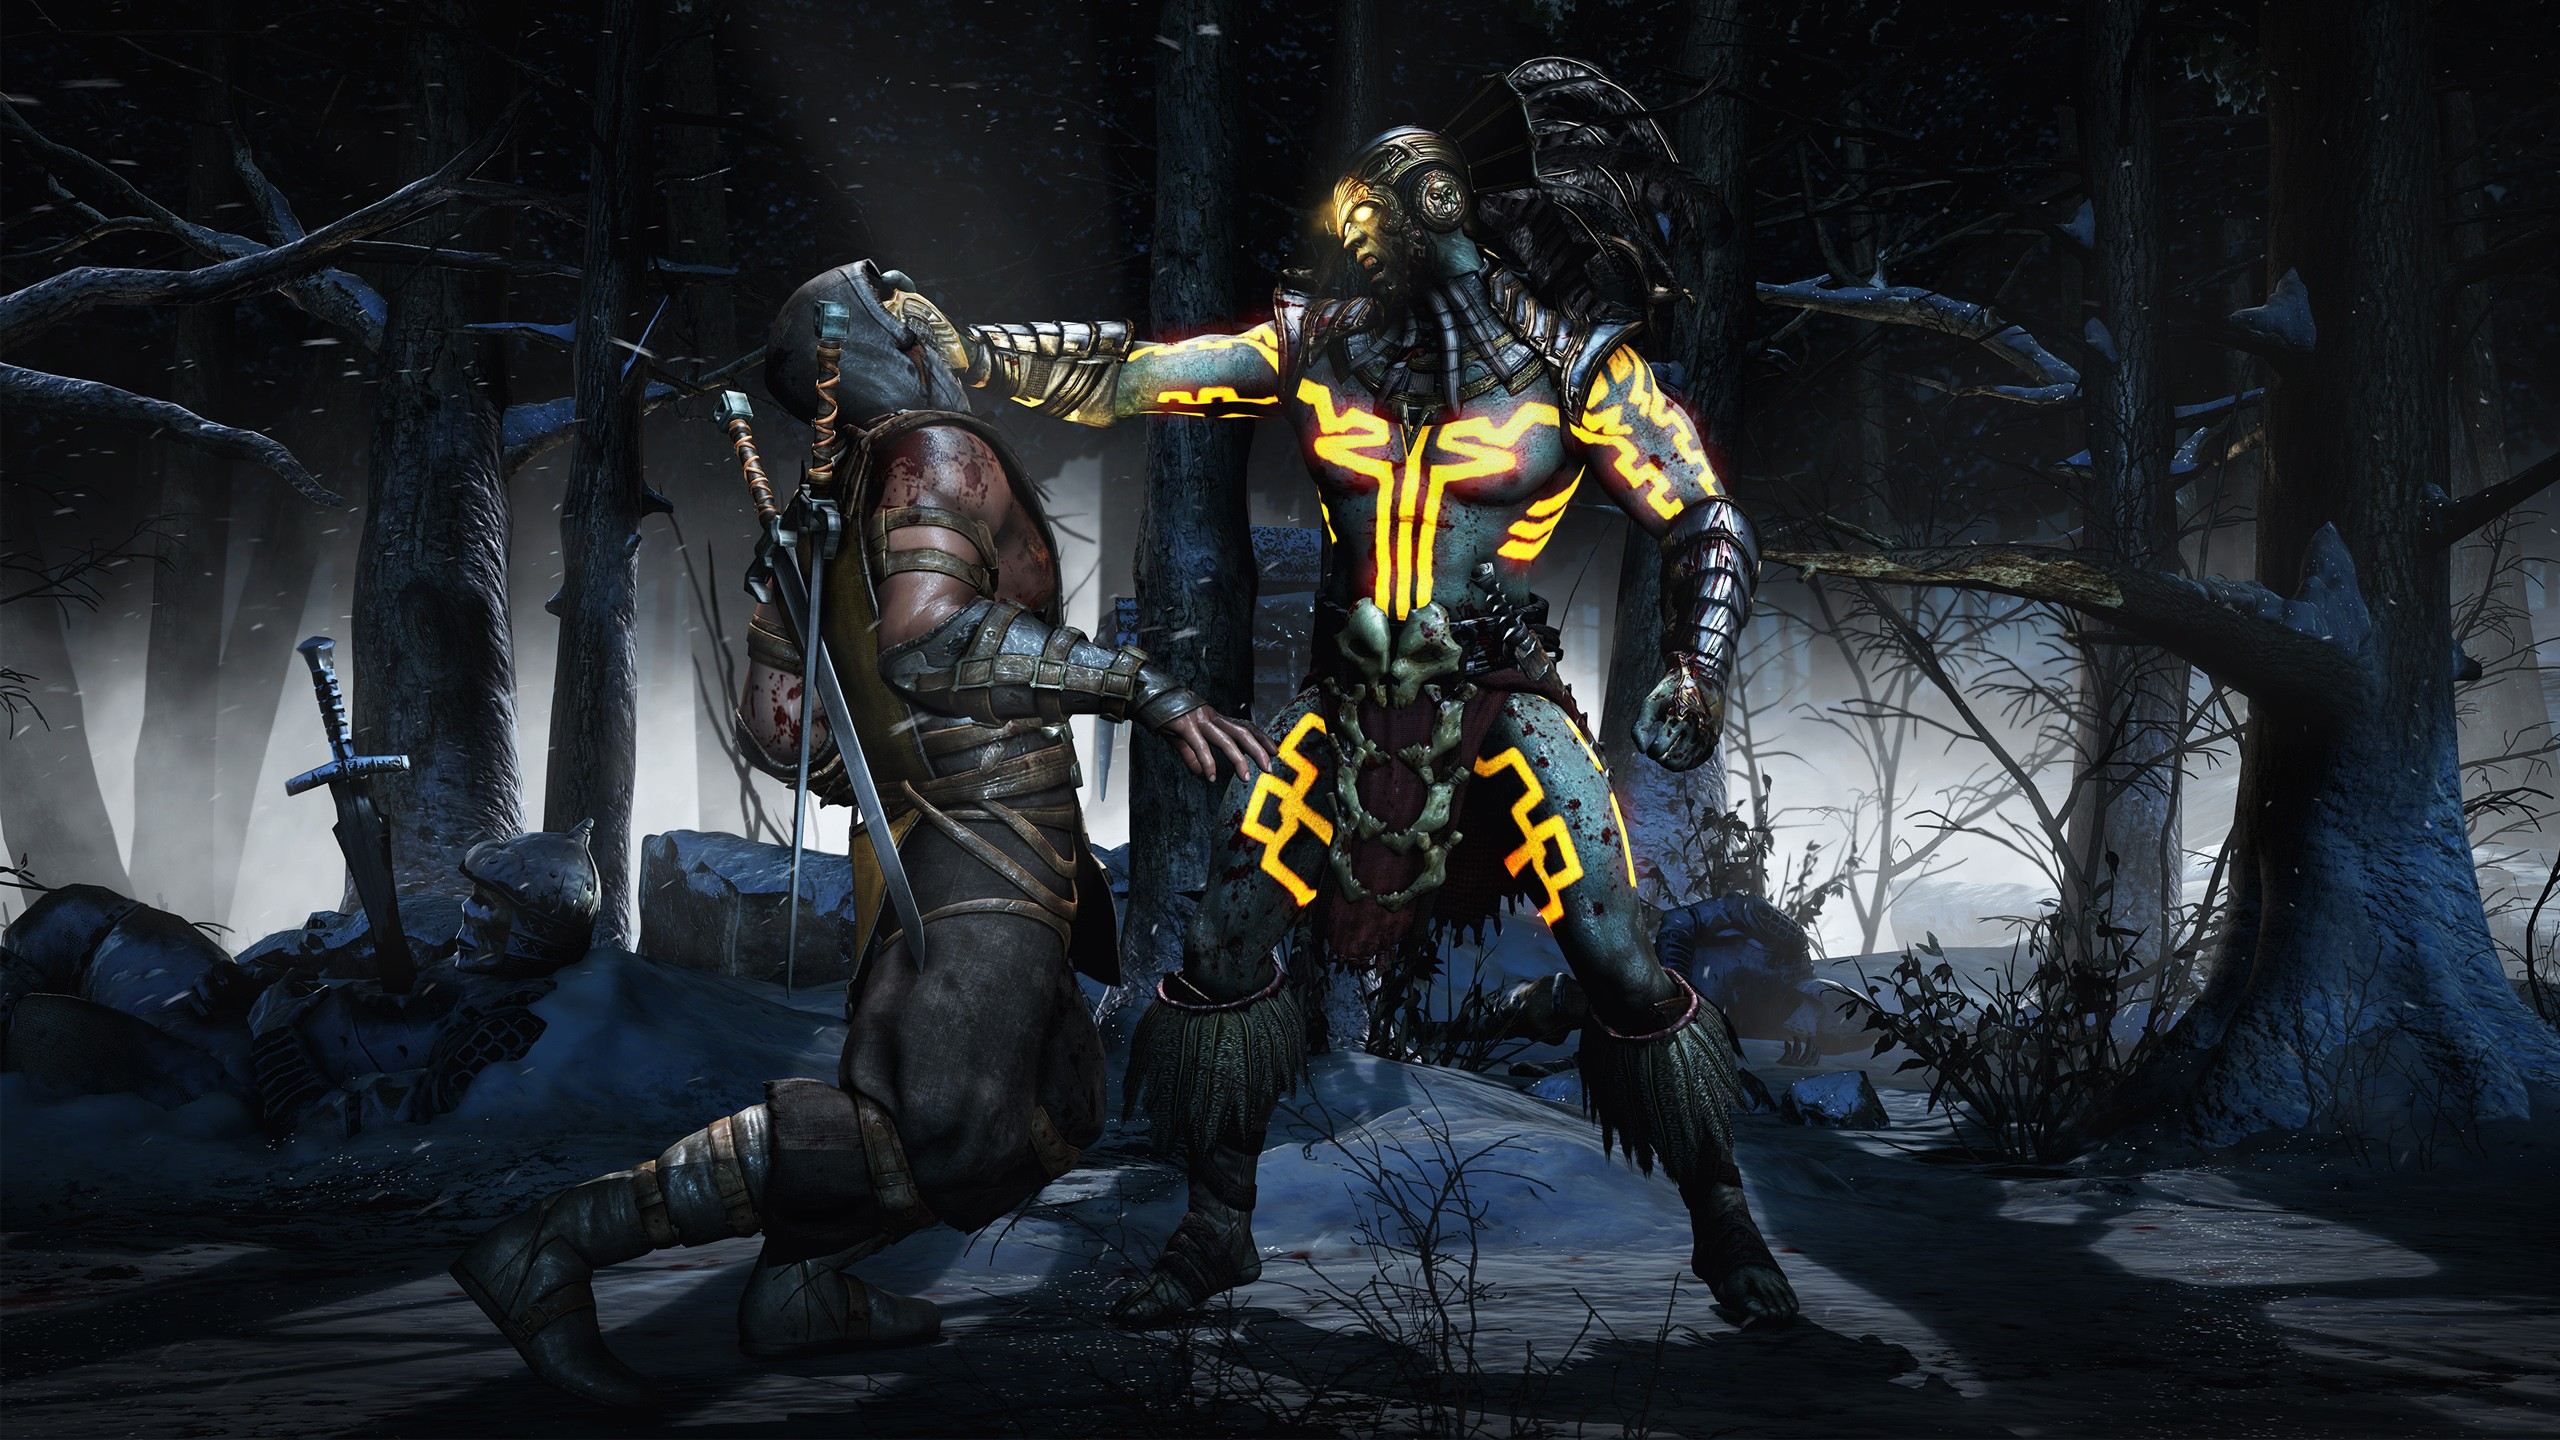 1600x1200 Mortal Kombat Kotal Scorpion 1600x1200 Resolution Hd 4k